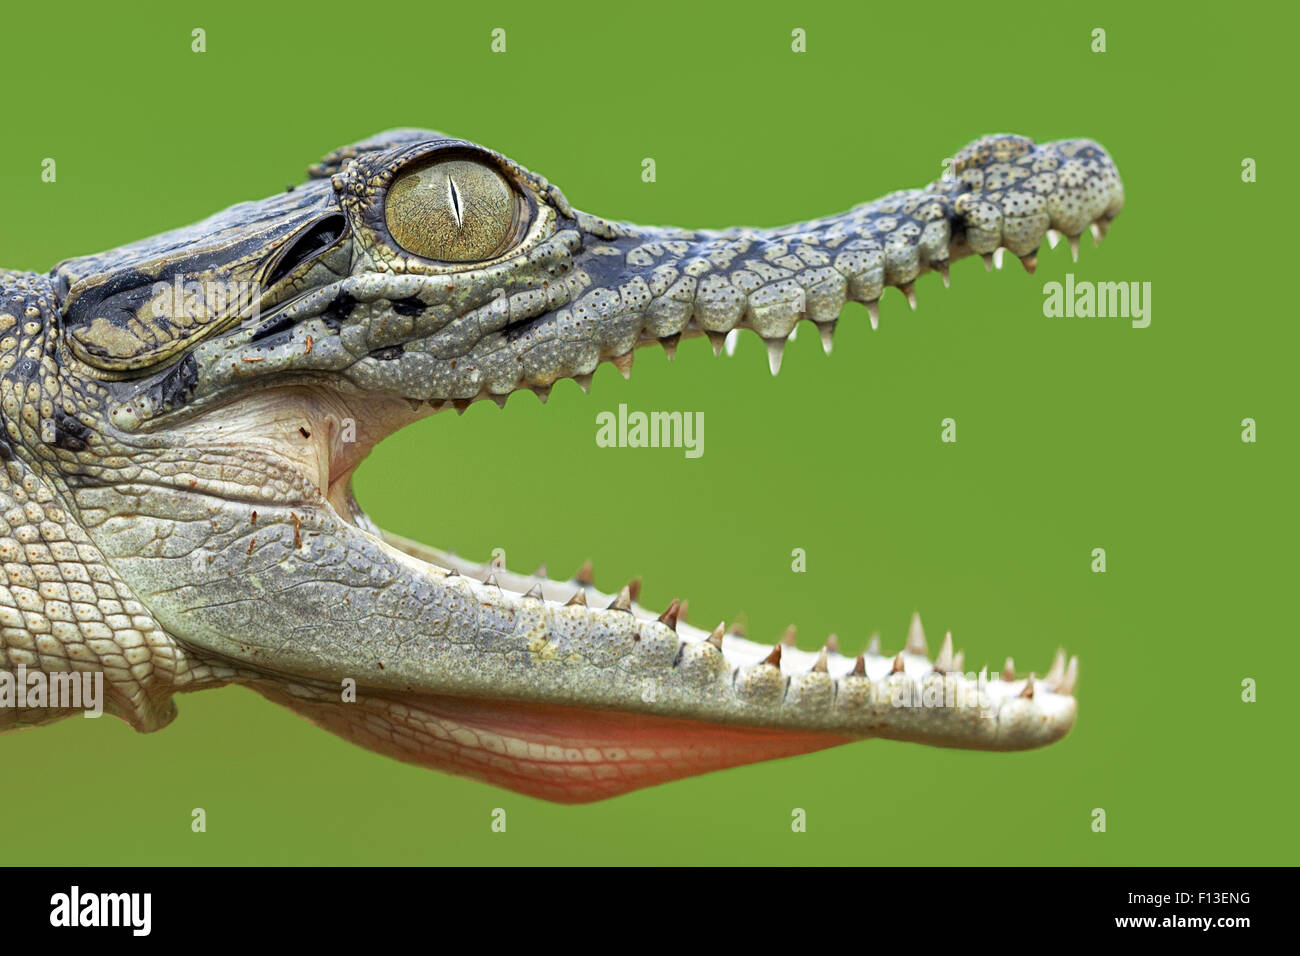 Close up of open mouthed crocodile - Stock Image